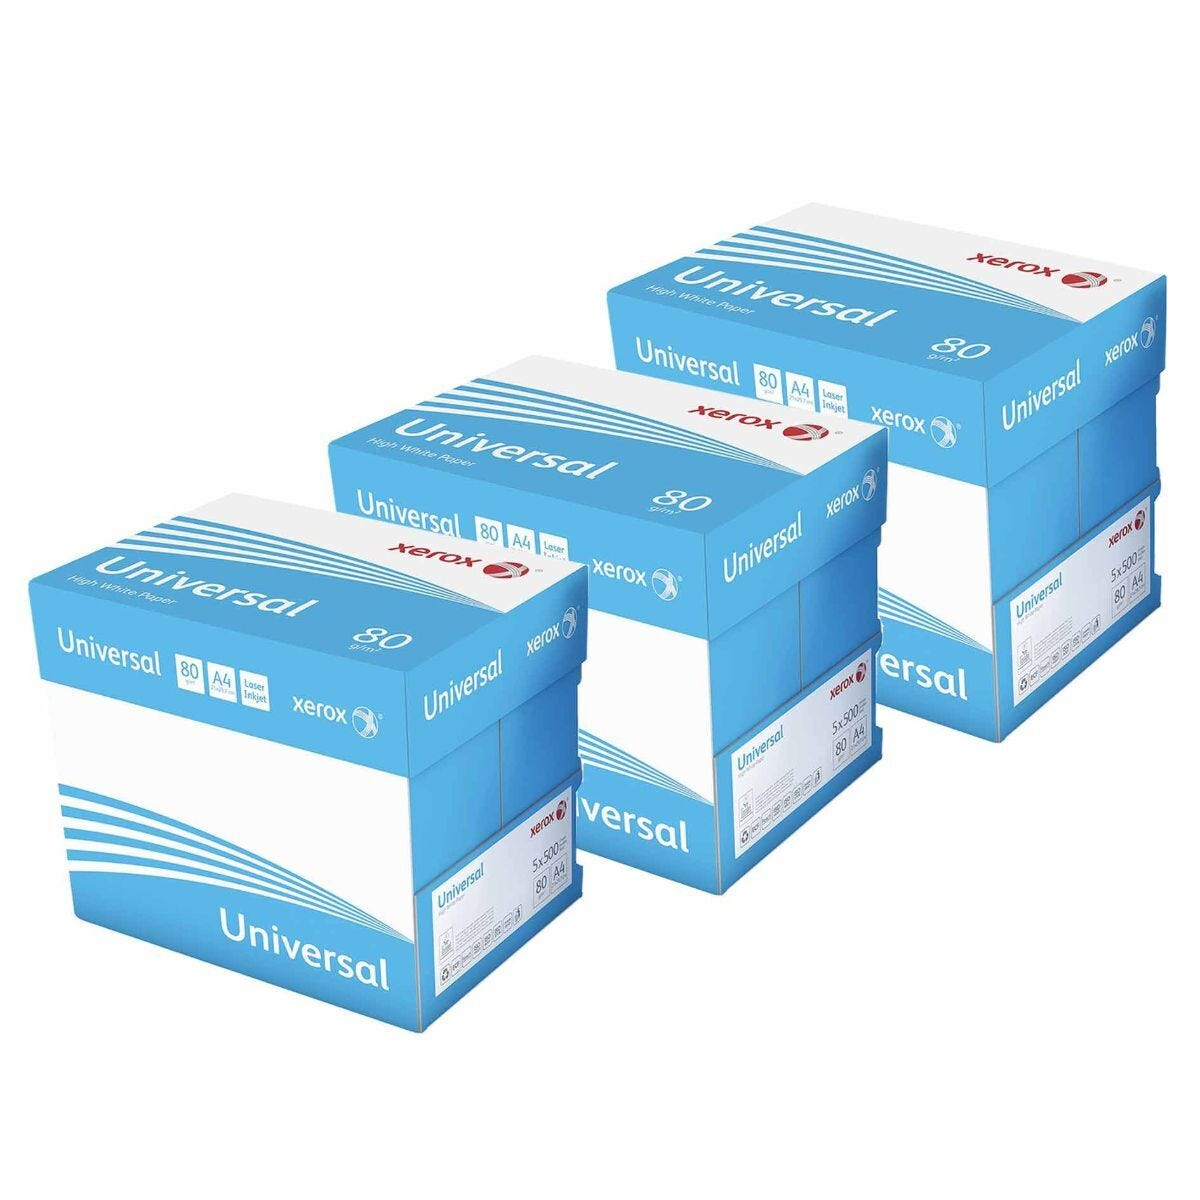 Xerox Universal Copier Paper A4 80gsm Pack of 15